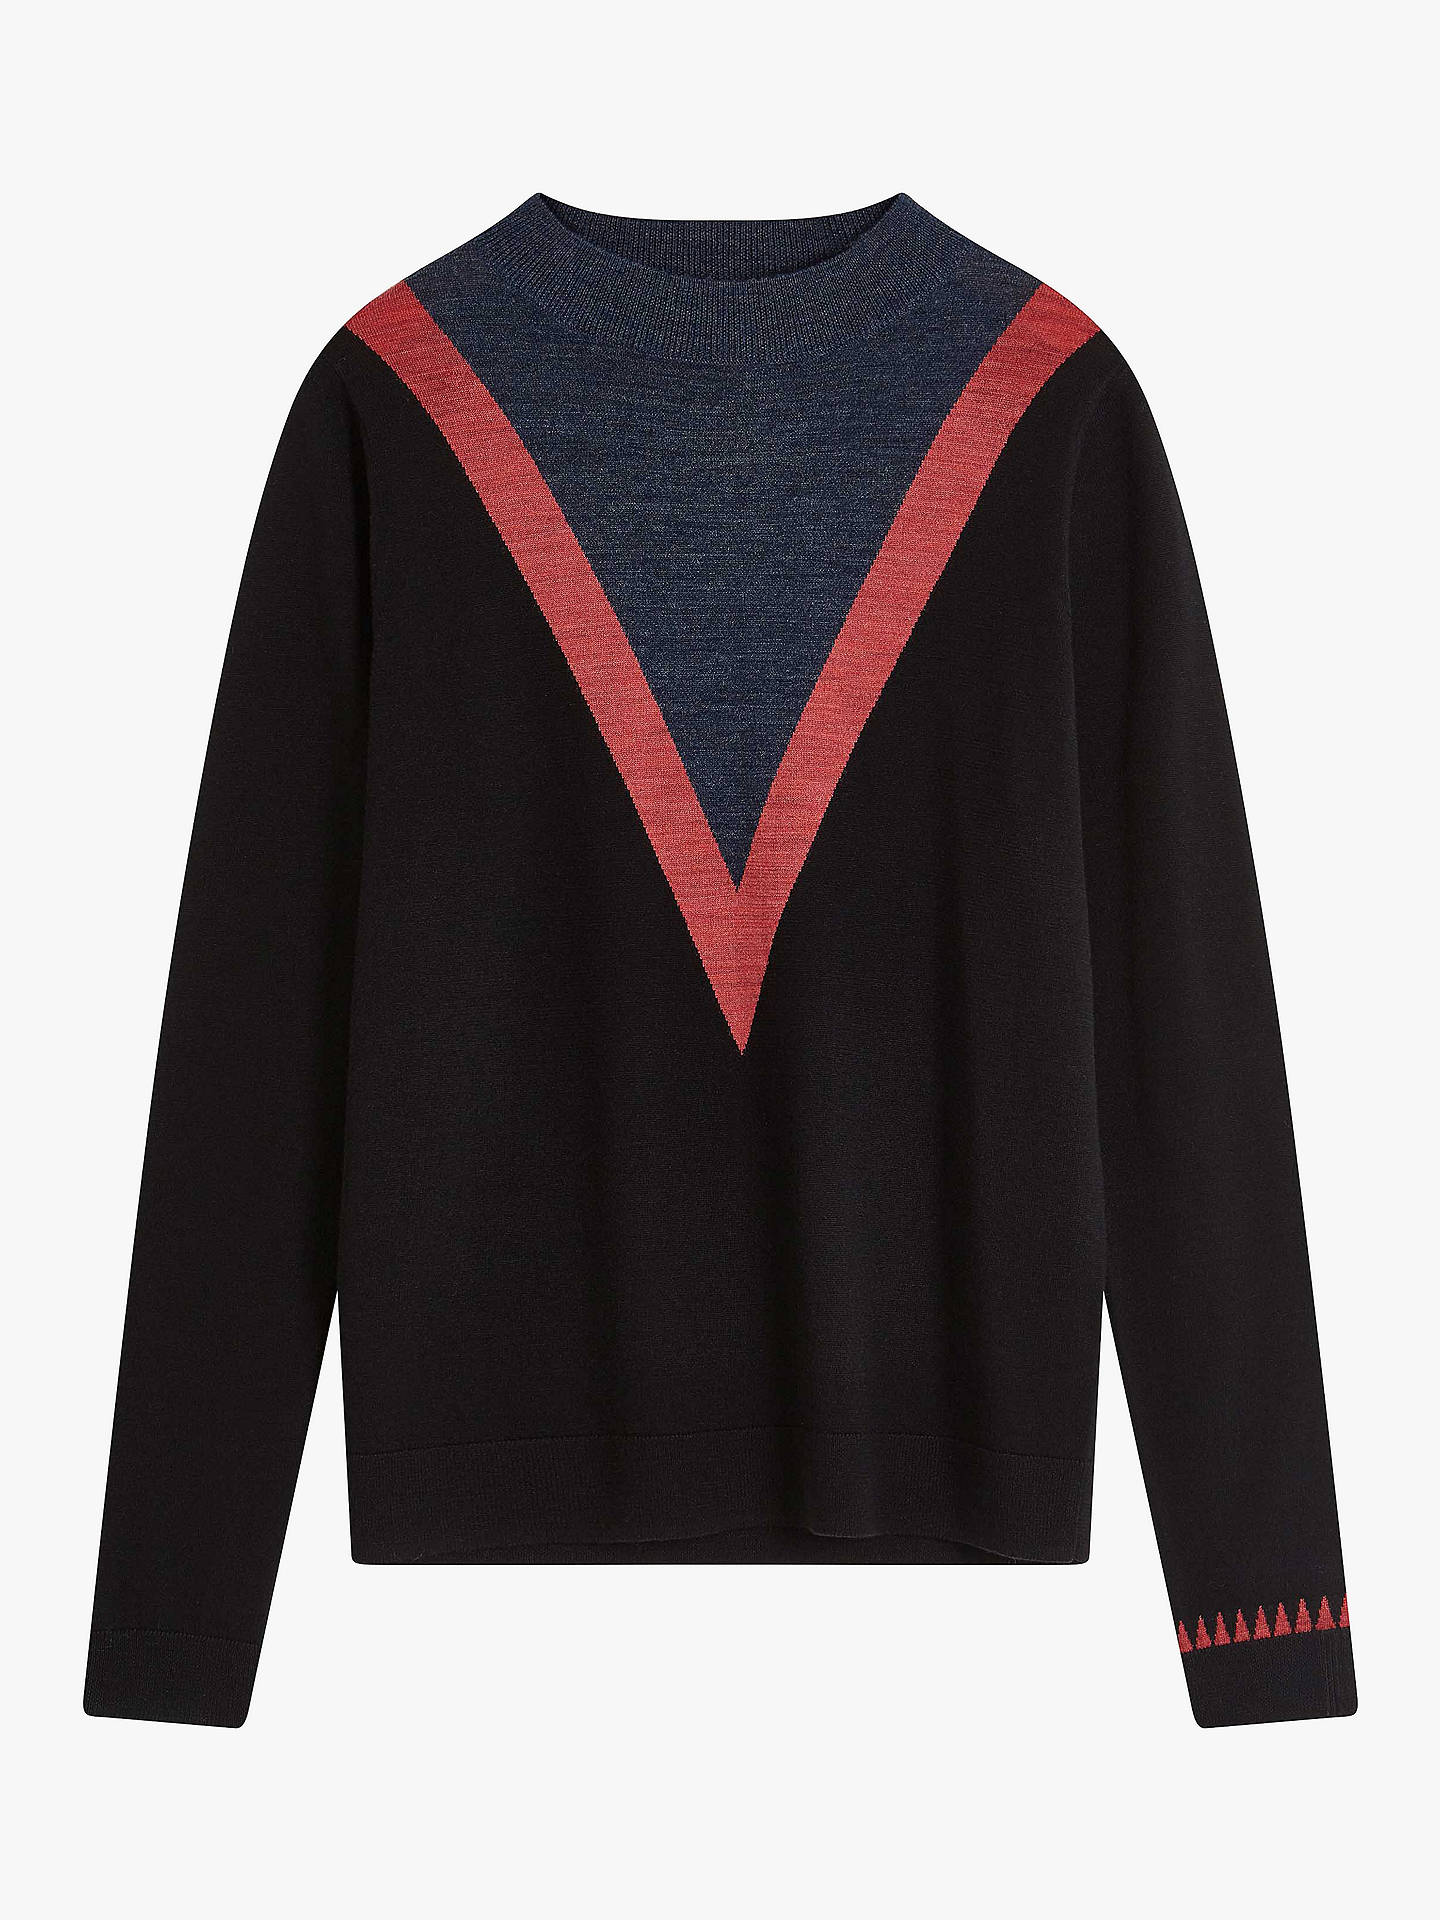 Buy Brora Merino Wool Chevron Jumper, Black/Crapapple, 10 Online at johnlewis.com